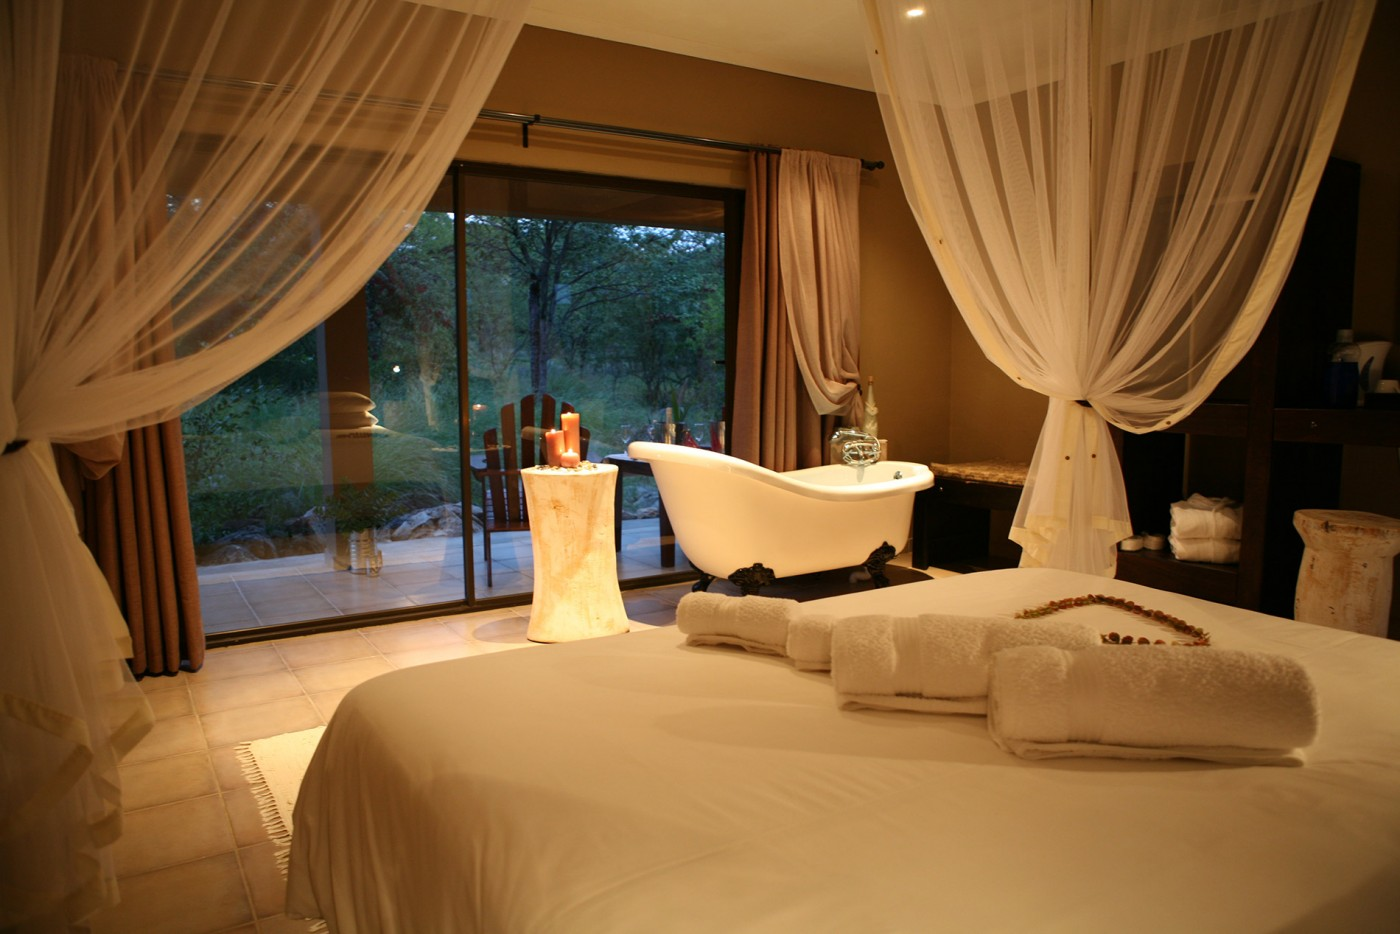 toshari-lodge-accommodation-room-8-etosha-namibia